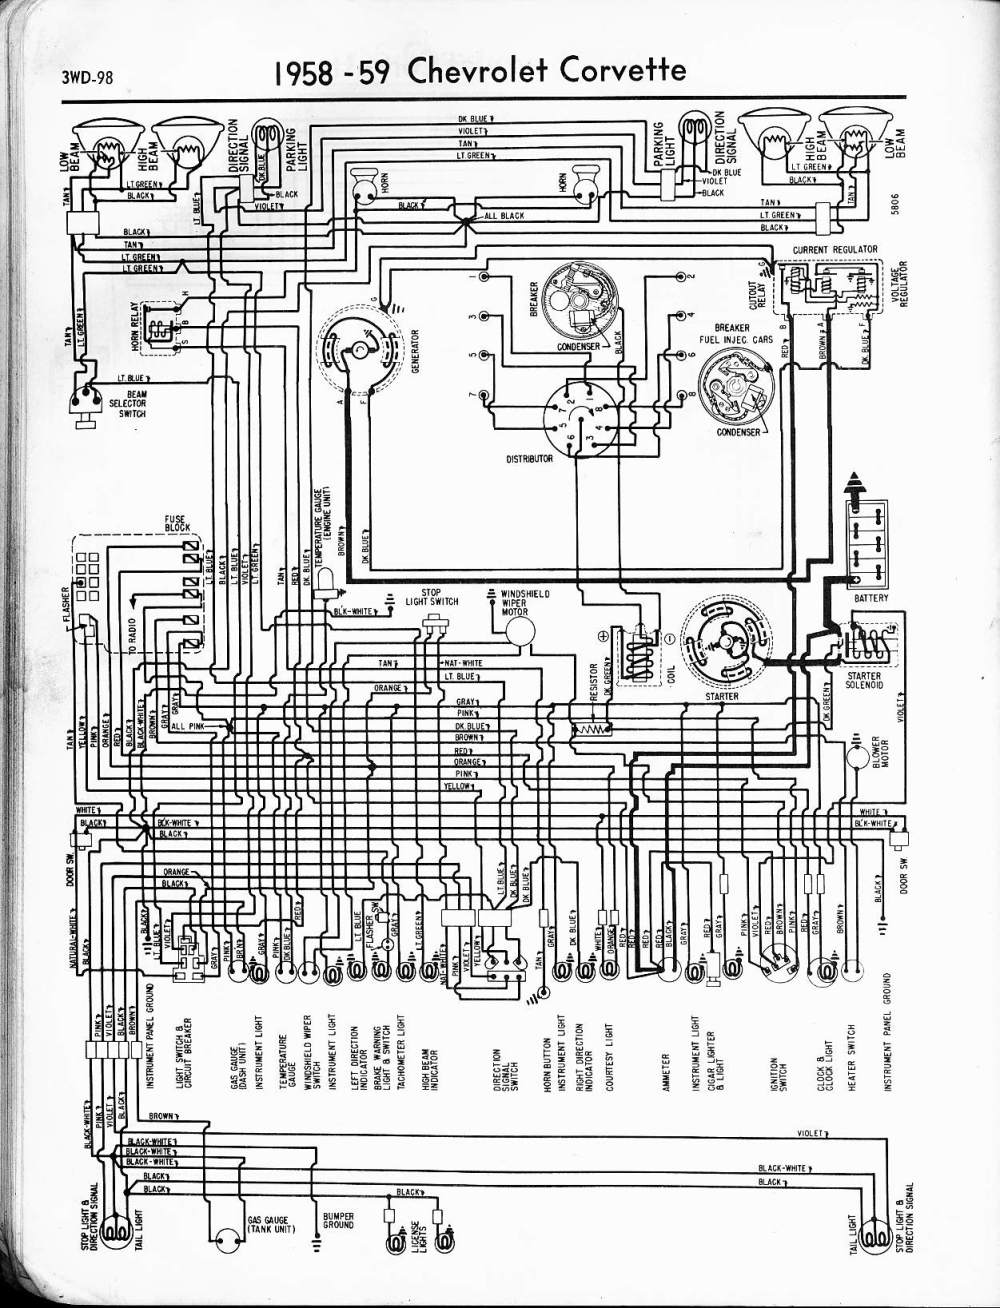 medium resolution of 57 chevy wiring diagram manual e book1957 chevy wiring diagram wiring diagram datasource57 65 chevy wiring